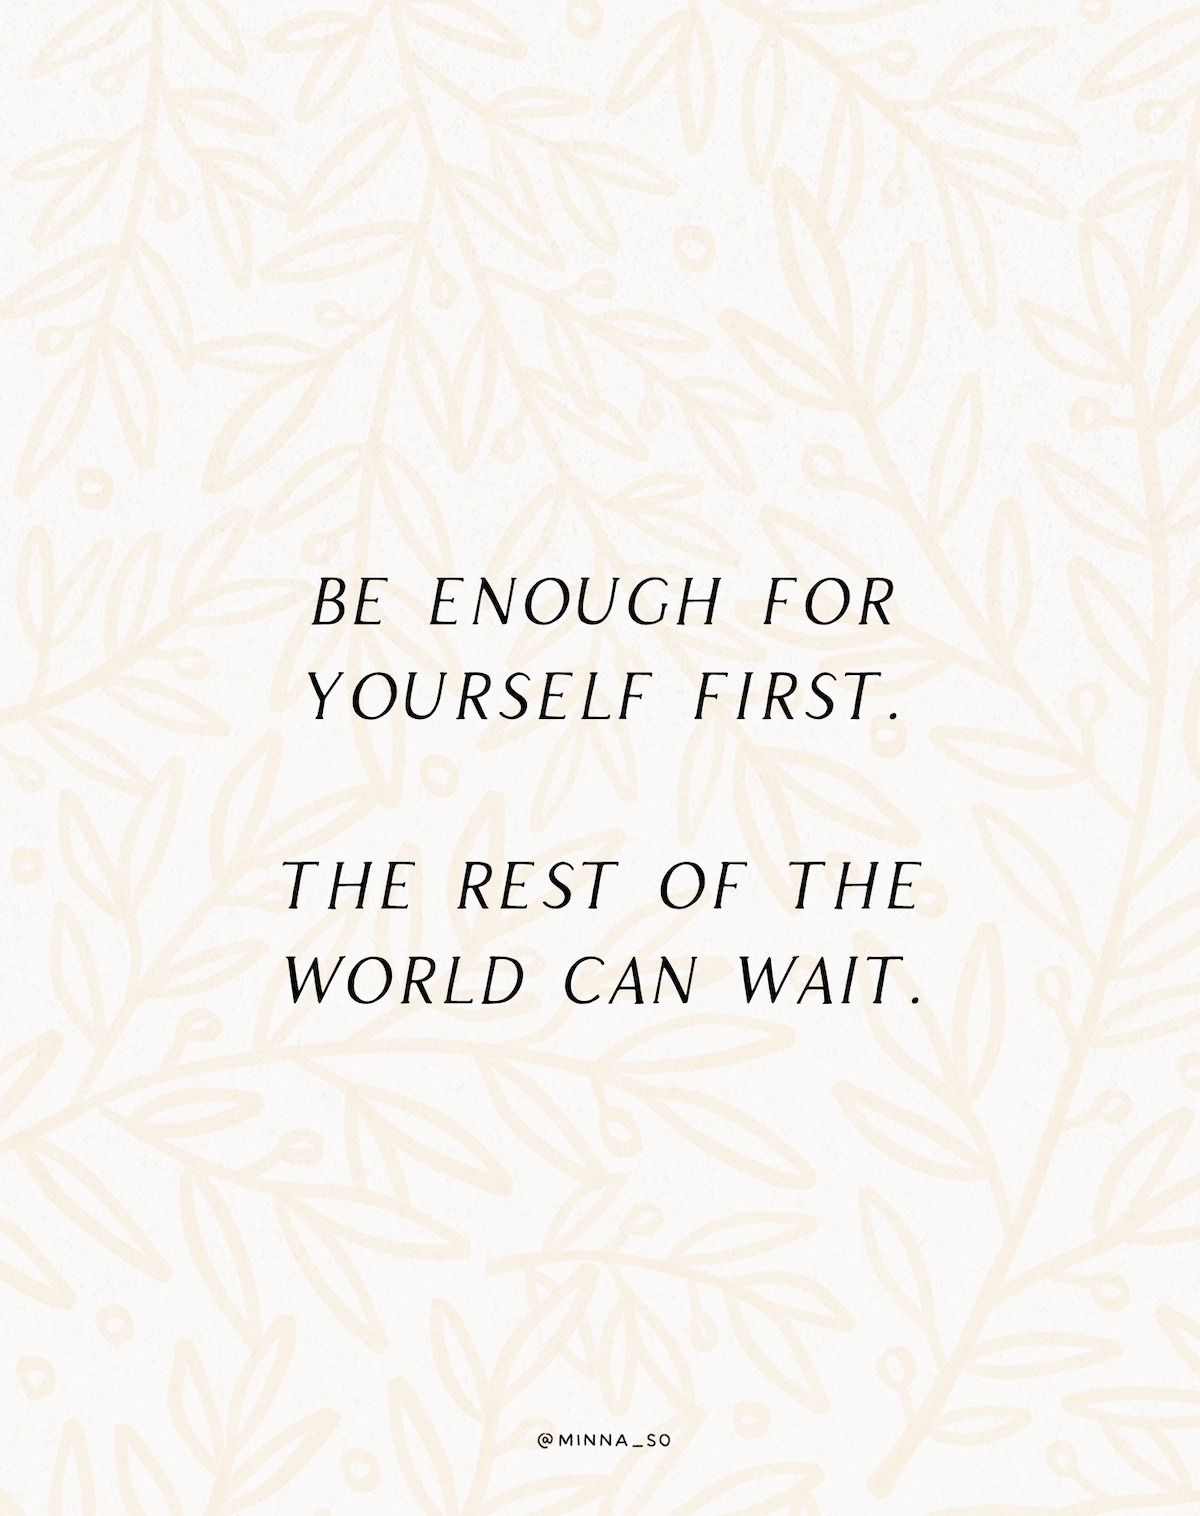 Be Enough For Yourself First - by MInna So